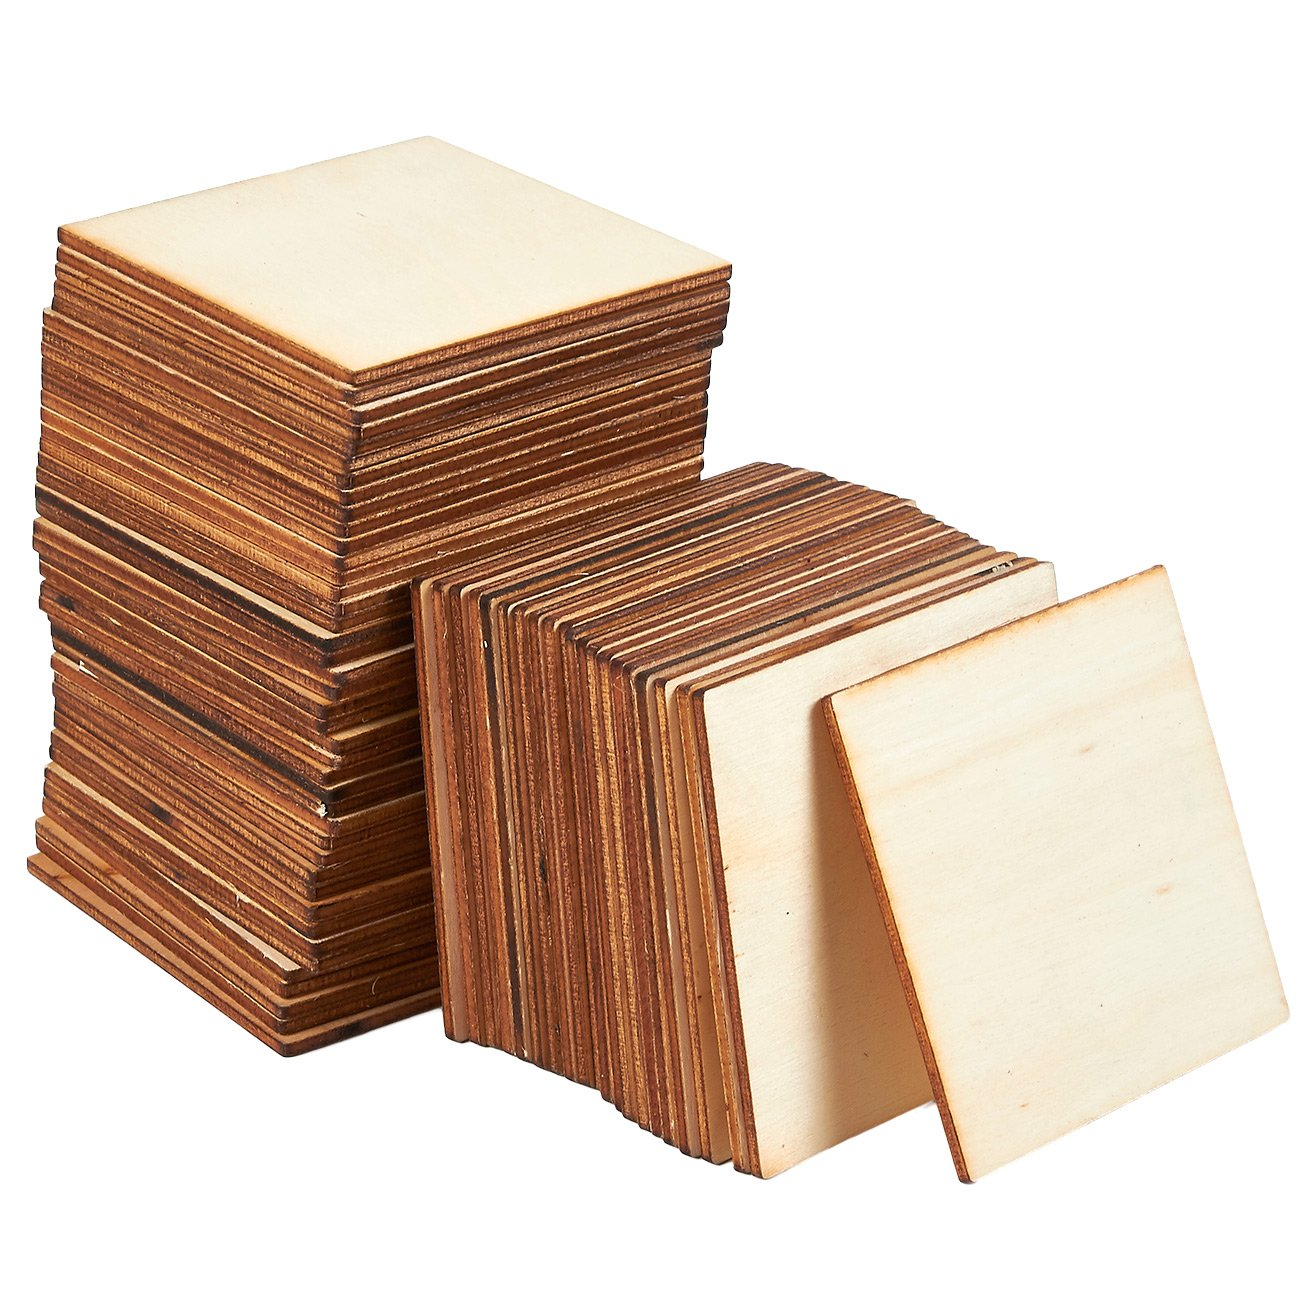 Unfinished Wood Pieces - 60-Pack Wooden Squares Cutout Tiles, Natural Rustic Craft Wood for Home Decoration, DIY Supplies, 3 x 3 inches